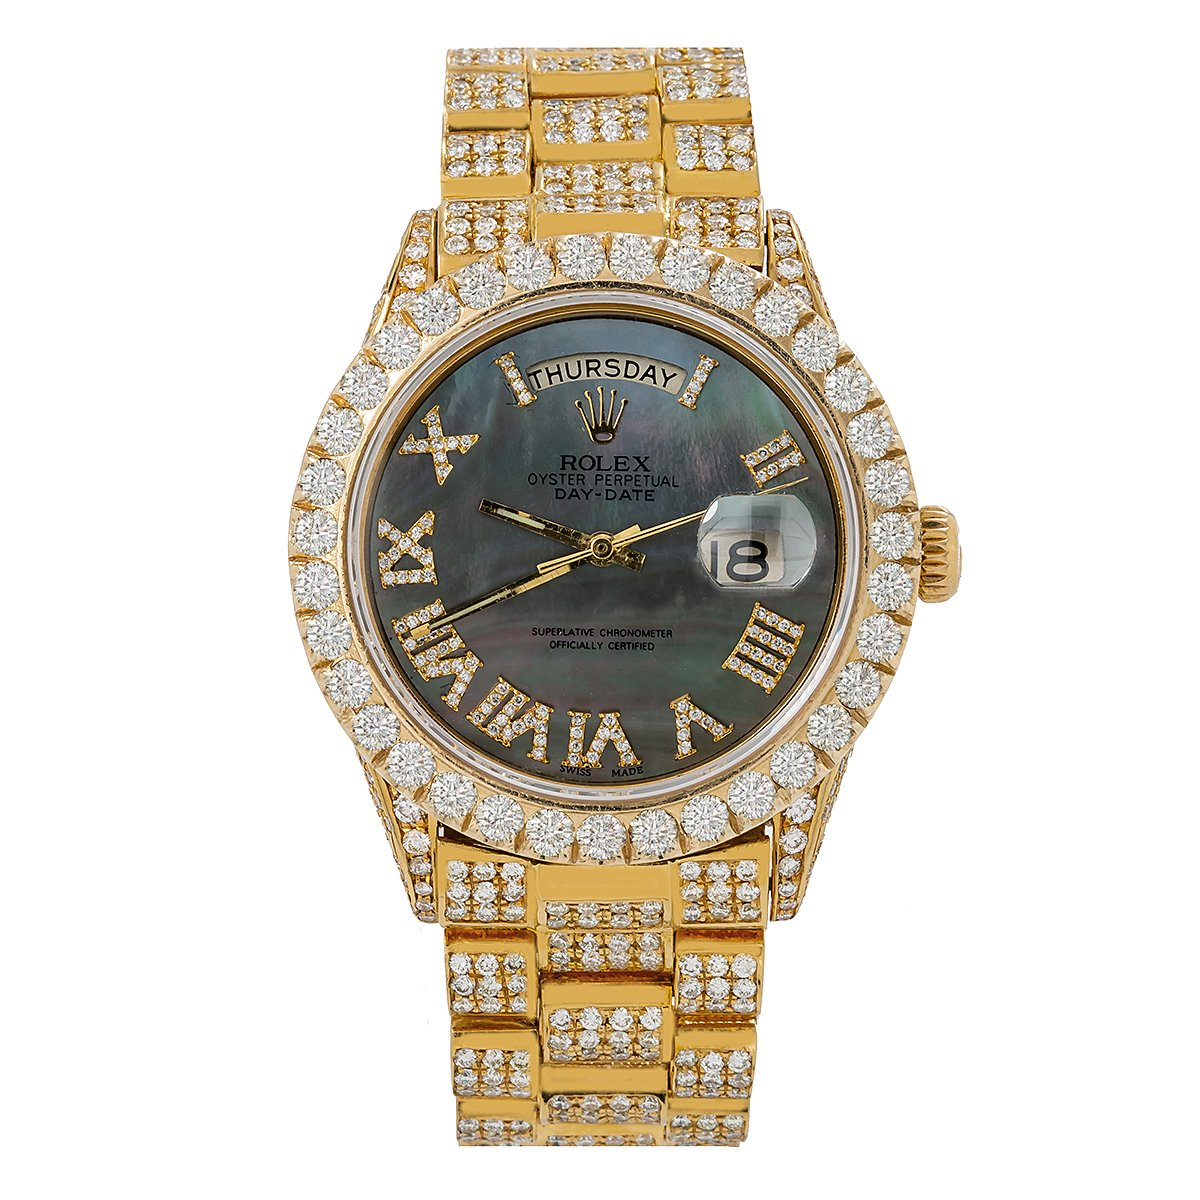 Rolex Day-Date Diamond Watch, 18038 36mm, Black Dial with 14.75 CT Diamonds